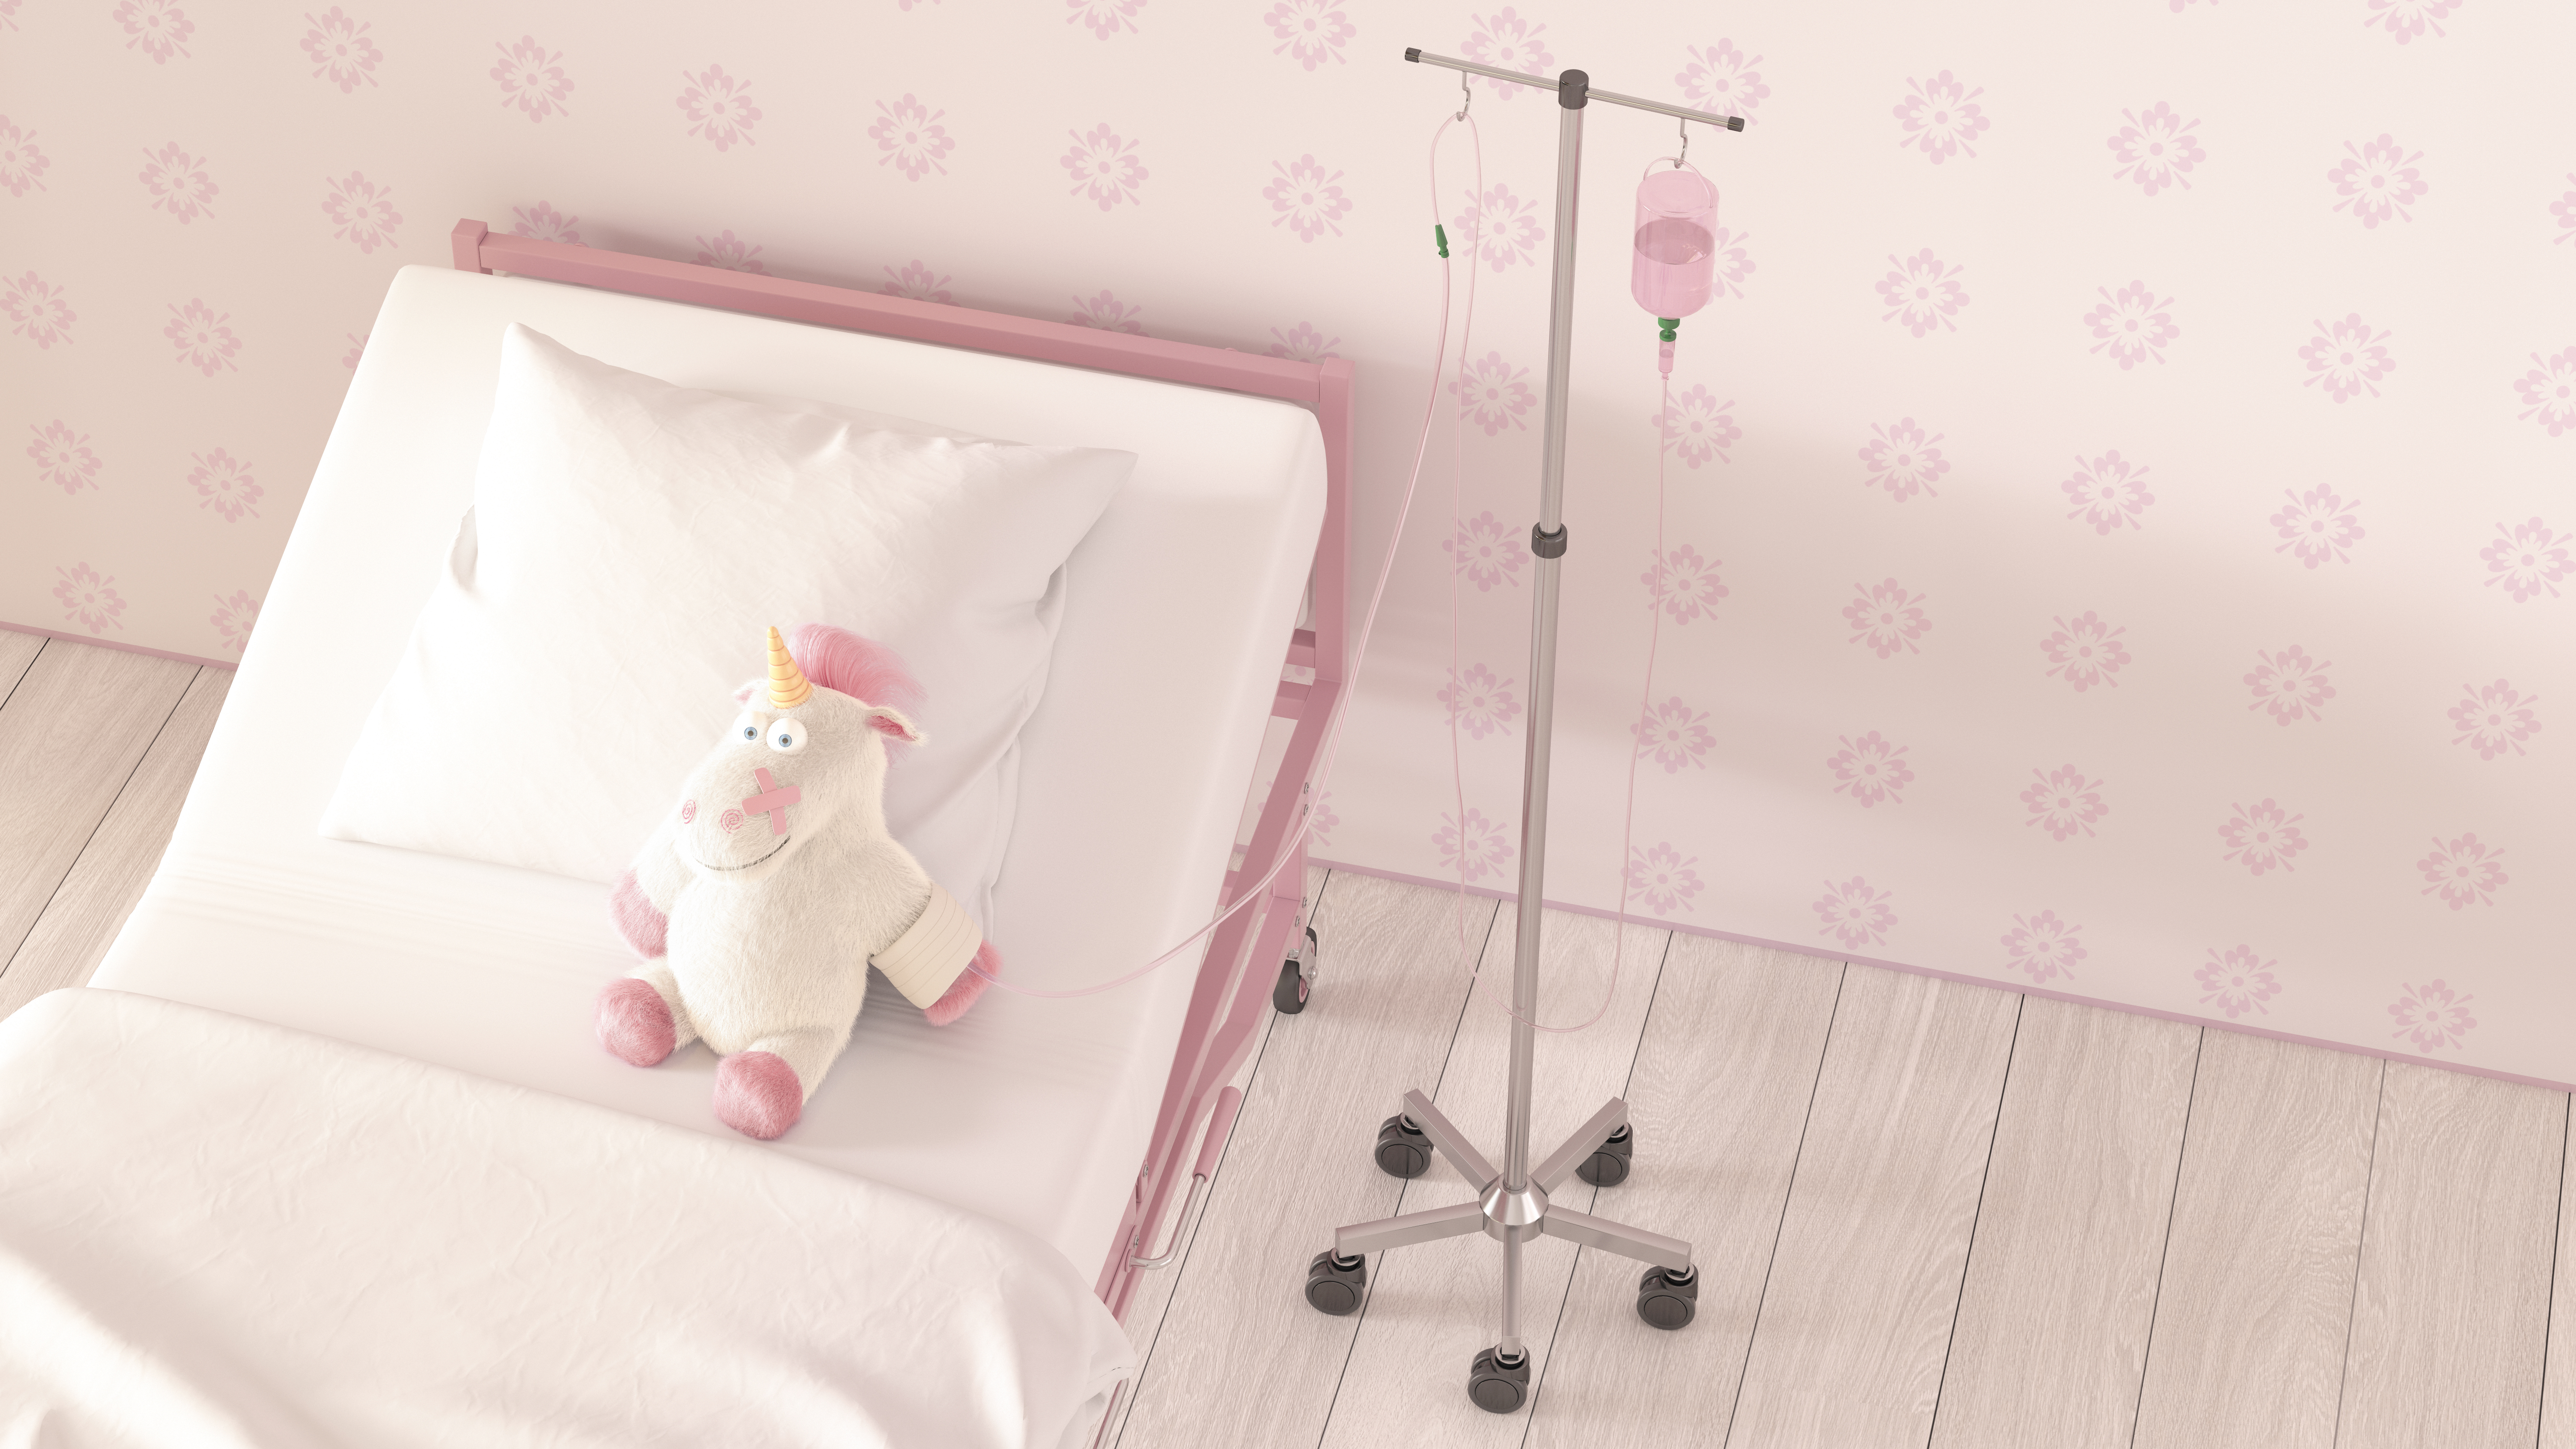 Image of a stuffed unicorn sitting in a hospital bed hooked up to an IV